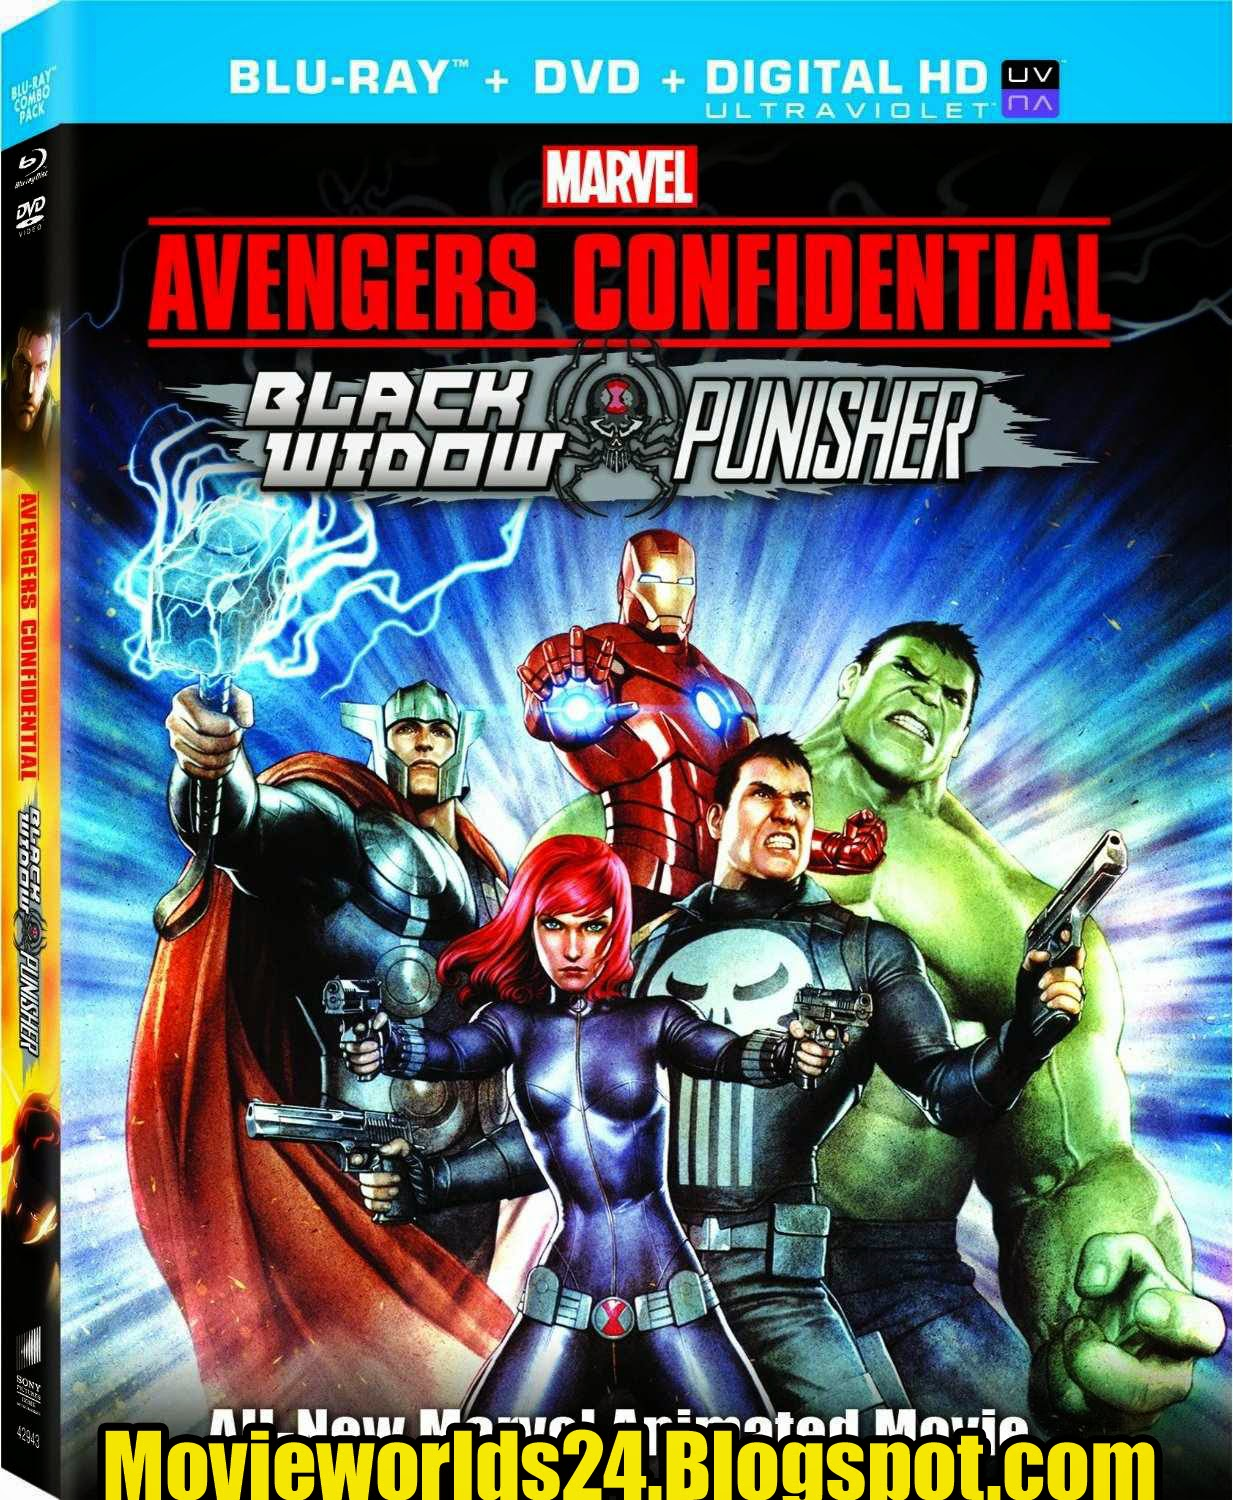 Avengers Confidential,Avengers Confidential Movie,Avengers Confidential Watch,Avengers Confidential2014,Avengers Confidential Video, Avengers Confidential Movie Downlaod,Avengers Confidential Movie Watch,Avengers Confidential Info,Avengers Confidential Full HD,1080P,720P,480P,360,Mkv,Wmv,Mp4,3GP,Flv,Avi,Djmaza,Info,SOngspk, Full Movie,Avengers Confidential Full Movie ,Avengers Confidential Dvdrip,Avengers Confidential Dvdscrip,Avengers Confidential Movie Free Download, Avengers Confidential Movie Download,Full Movie Download,Hollywood Movie Avengers Confidential,Avengers Confidential English Movie,Latest Movie ,Torrent Movie,HD Movie,HD,blueray rip,HDrip,Webrip, Avengers Confidential Online DVD Movie,Full Movie Downlaod,Latest Online ,movie Info,Download Latest Movie Song,Hollywood Movie 2014,English Movie Download,Avengers Confidential Online Movies,Bollywood Movie,Hollywood Movie,Kalkata movie ,Avengers Confidential Online Video,Avengers Confidential Youtube Movie,Move Youtube Movie, Free online Movie Avengers Confidential,Avengers Confidential Online Movie Free Download,Full Movie Frree Download,Mediafire Movies Avengers Confidential,World4dl Movie Avengers Confidential,Info,Avengers Confidential 300MbFimls,Worldfree4u,Online Movie Avengers Confidential Free,Avengers Confidential animated Movie,Avengers Confidential Animated Movie 2014,2014 Avengers Confidential Animated Movie,Full movie Avengers Confidential Animated